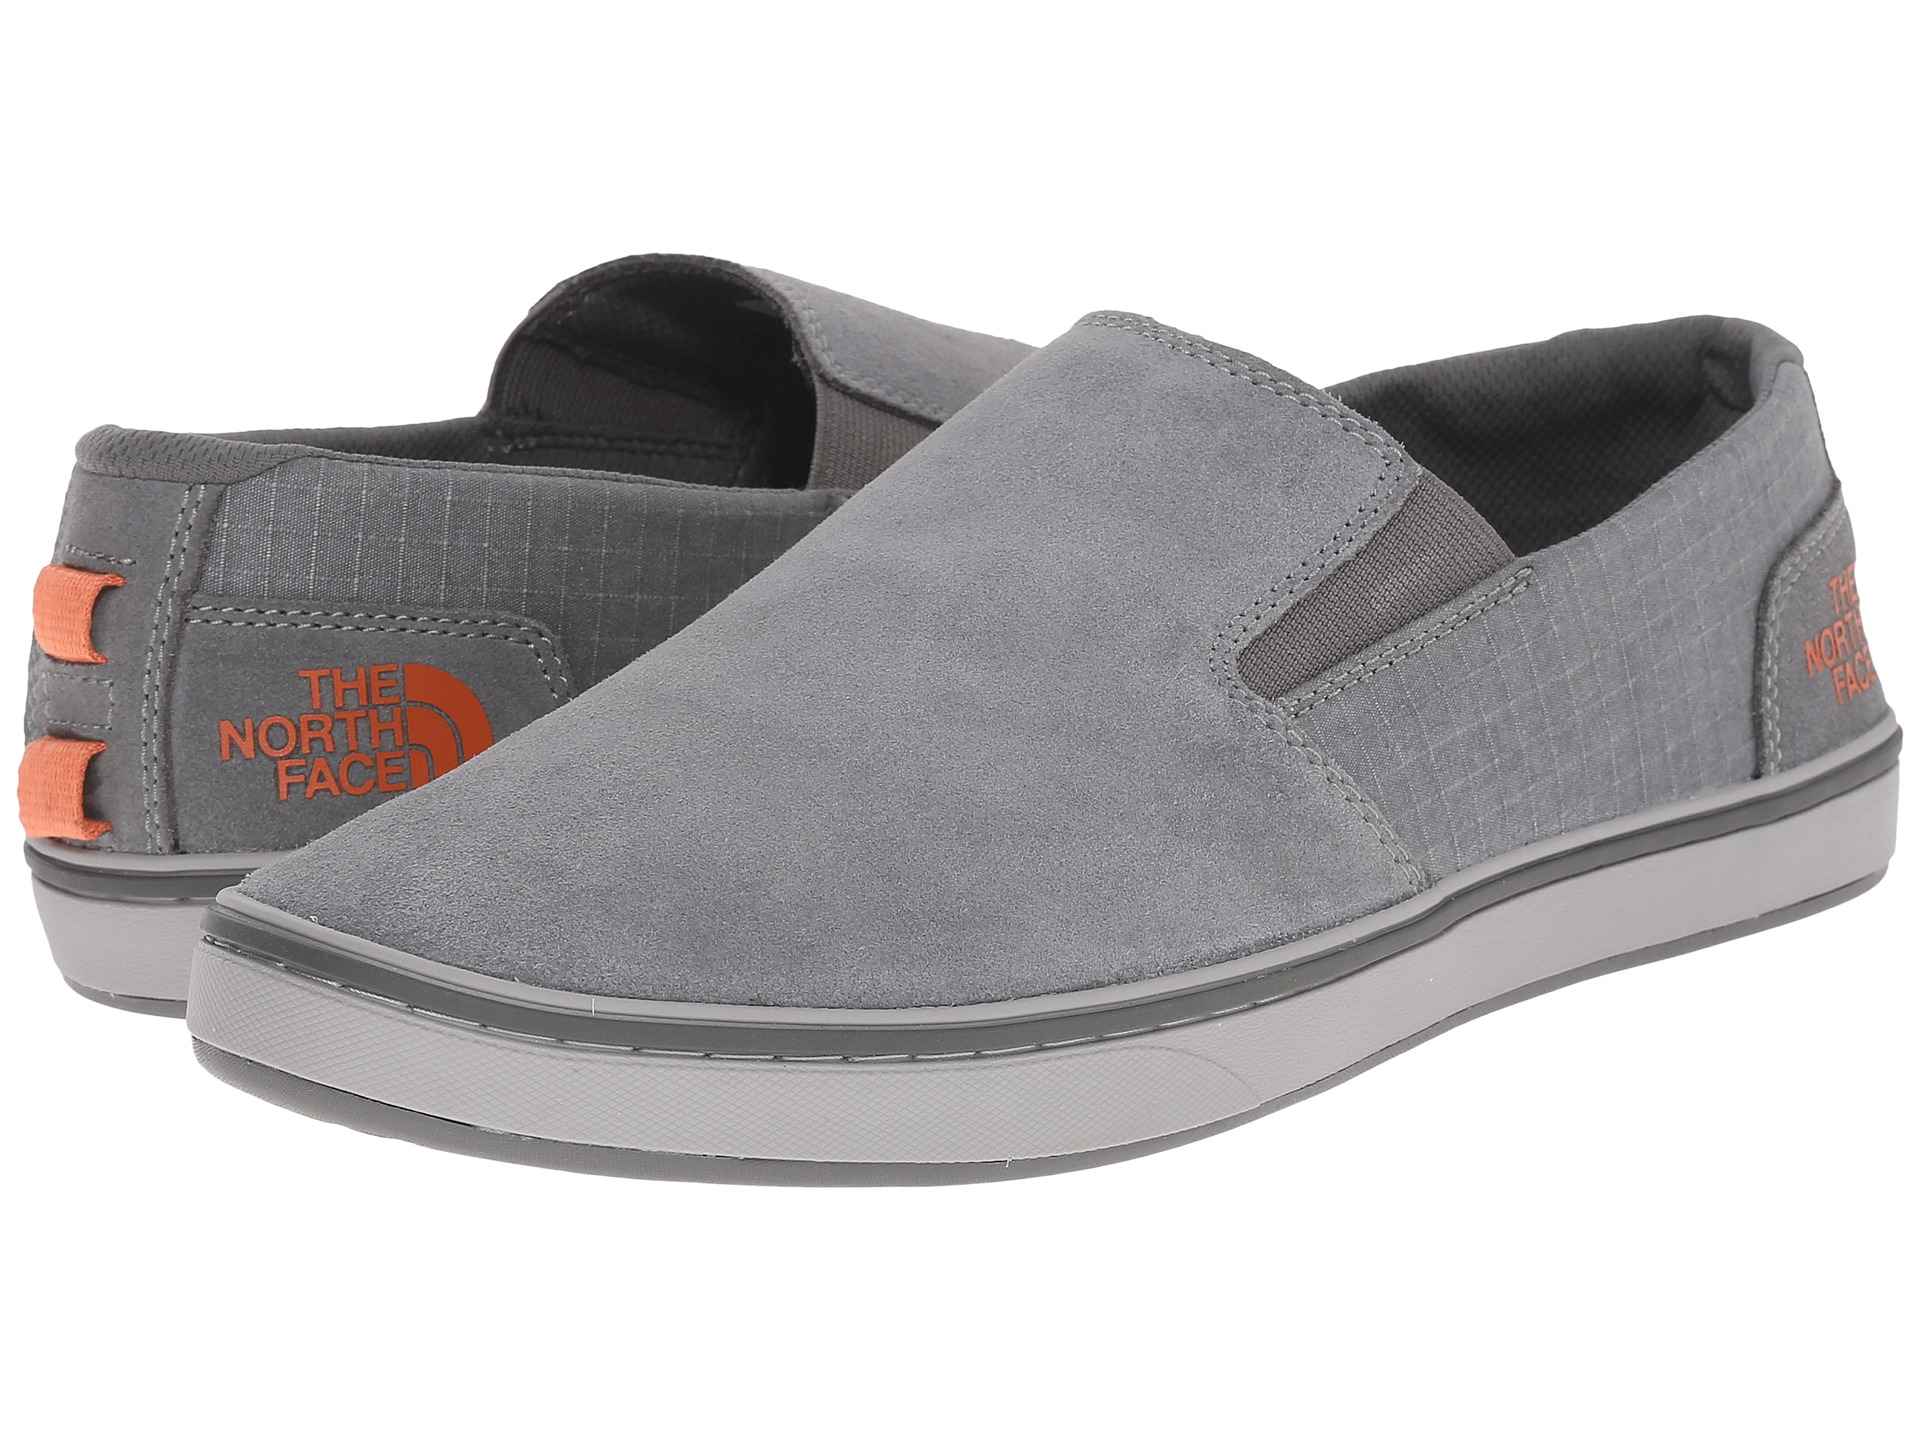 The North Face Mens Casual Shoes